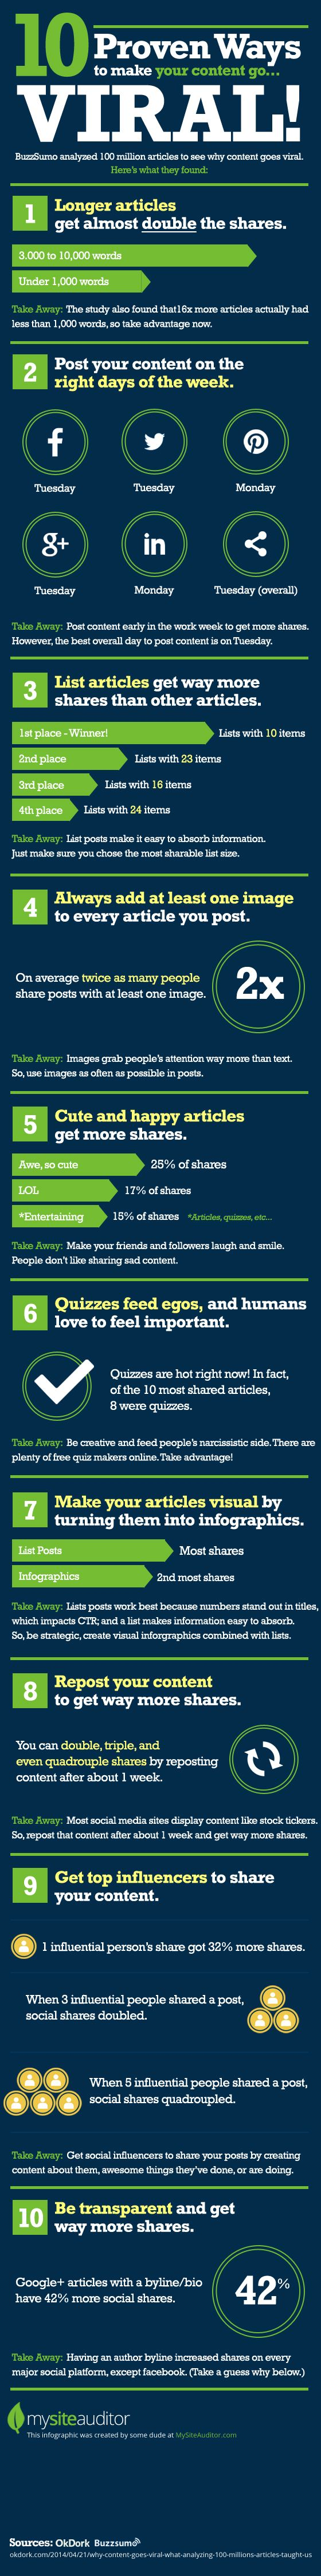 10 Proven Ways to Make Your Content Go Viral  Latest News & Trends in #digitalmarketing 2015 | http://webworksagency.com